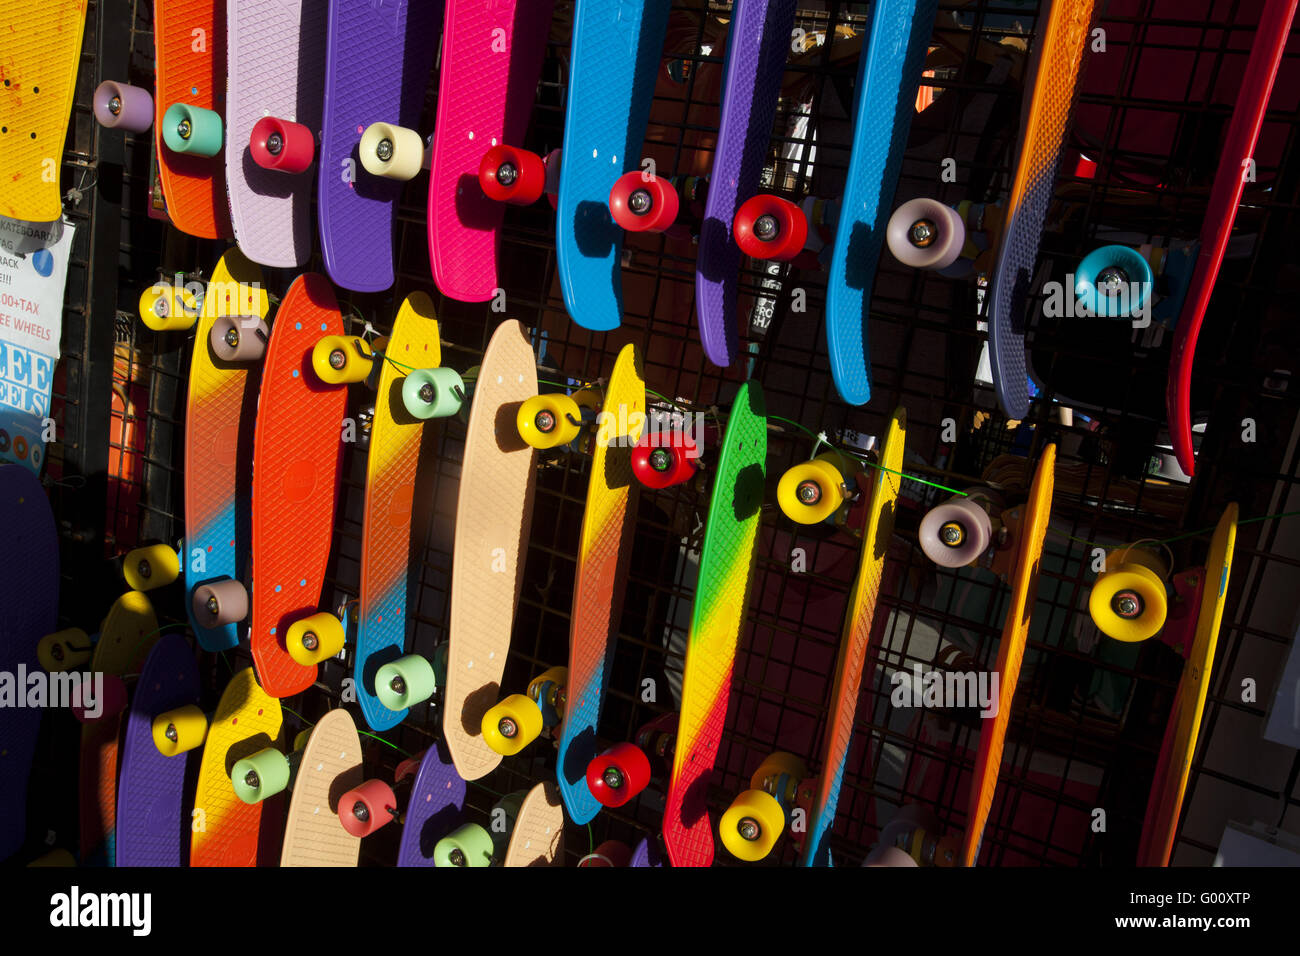 Visualización de skateboards, Venice Beach, Los Ángeles, California, Estados Unidos. Imagen De Stock